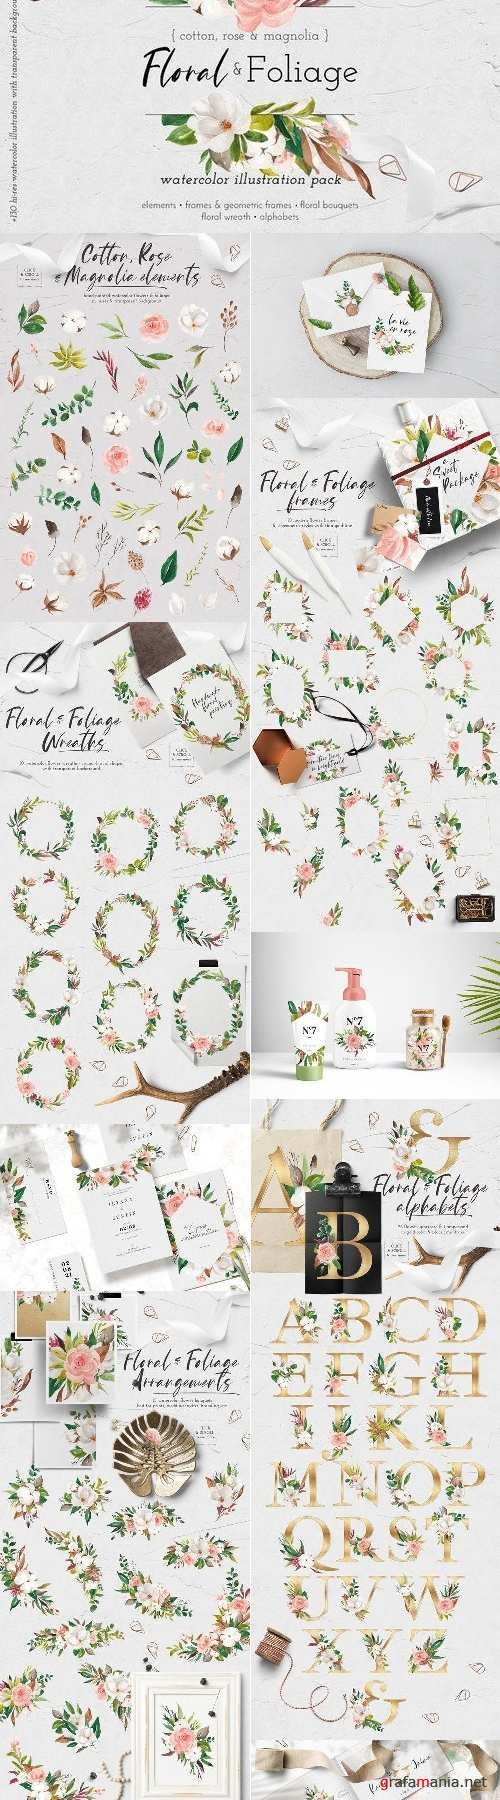 Floral & Foliage Illustration Pack - 4452095